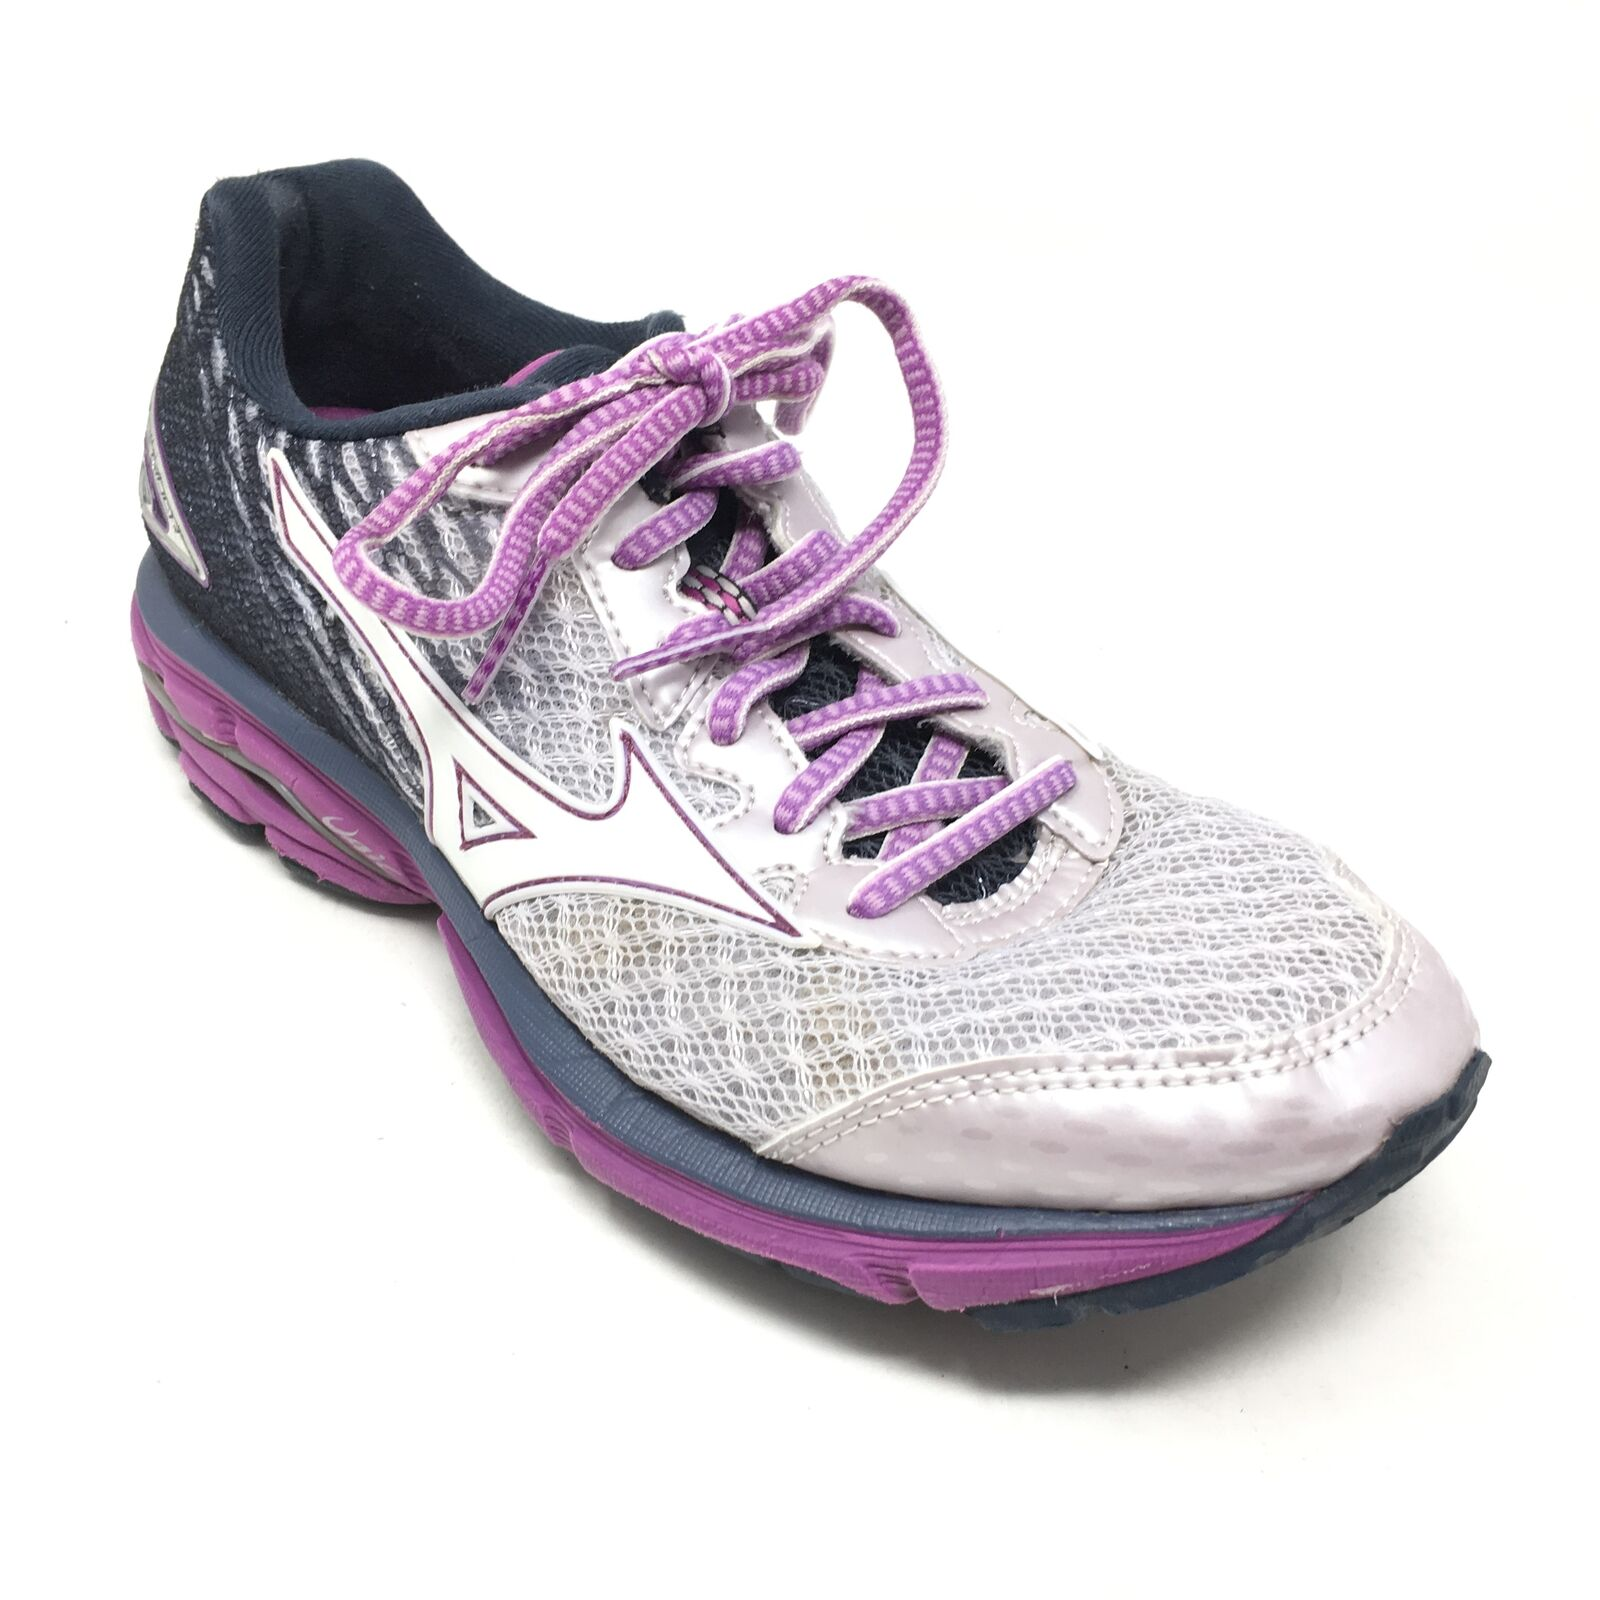 Women's Mizuno Wave Rider 19 Running shoes Sneakers Size 7M White Purple C9